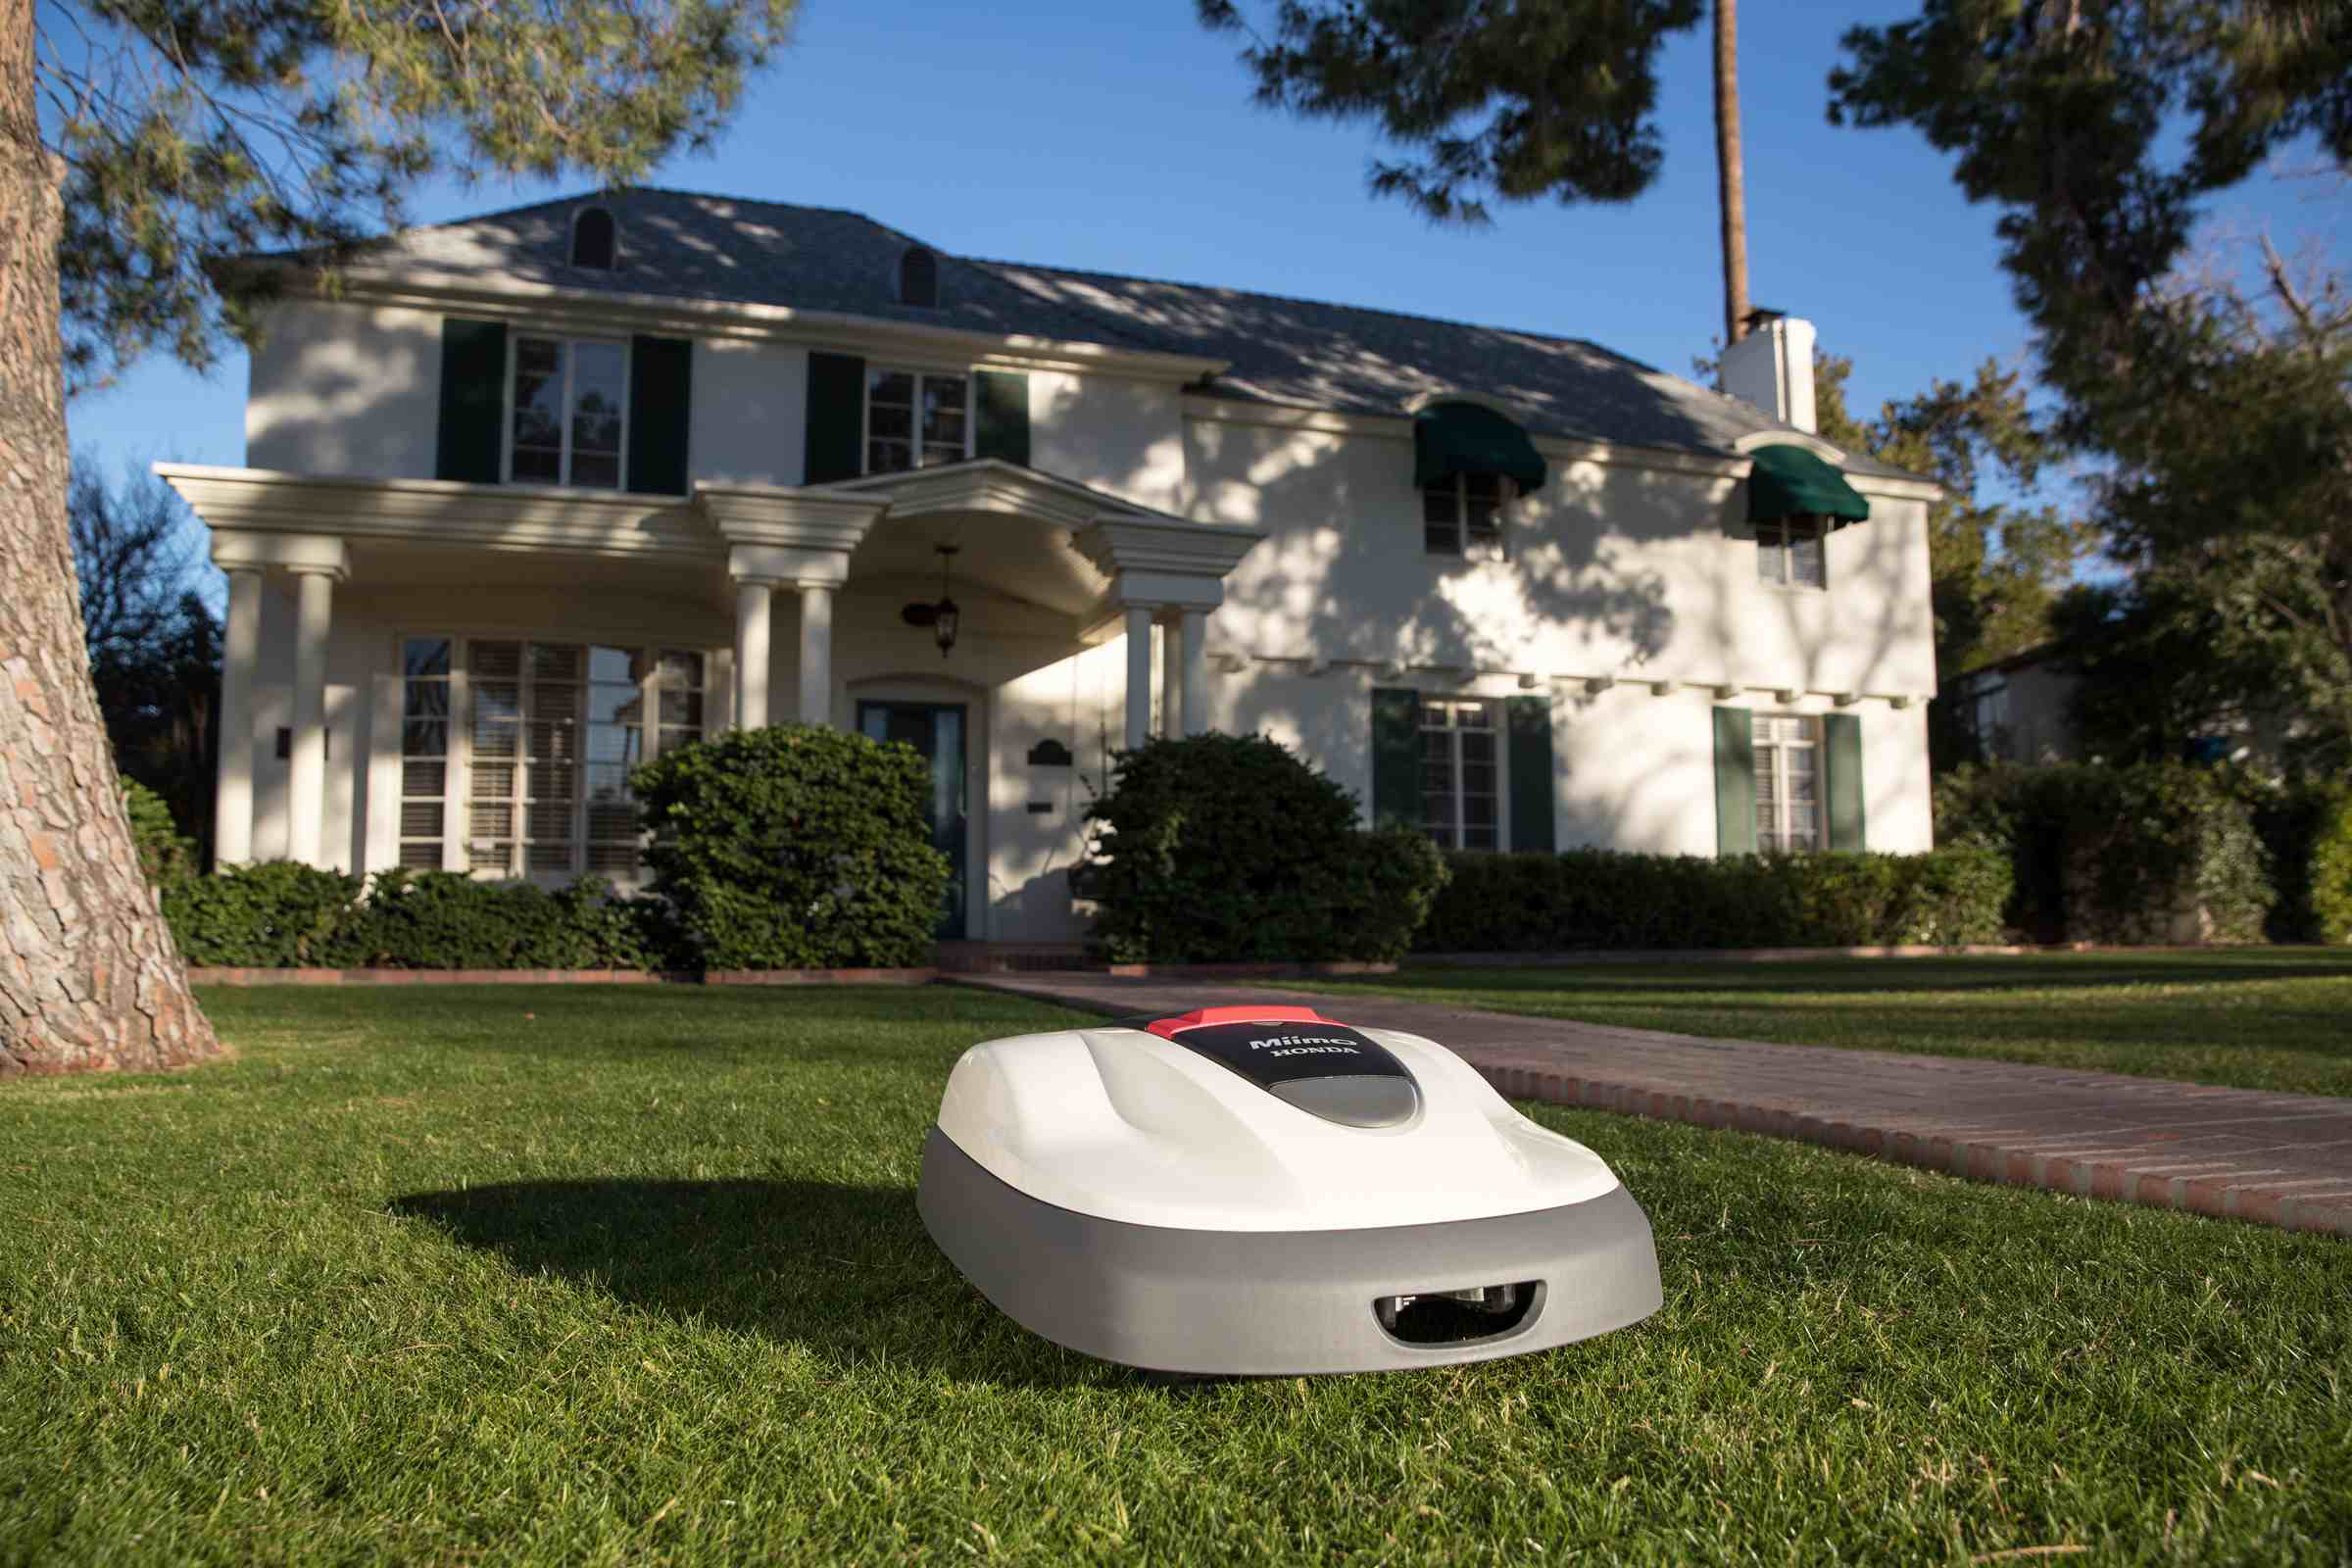 Honda Power Equipment introduces its first robotic lawn mower: Miimo